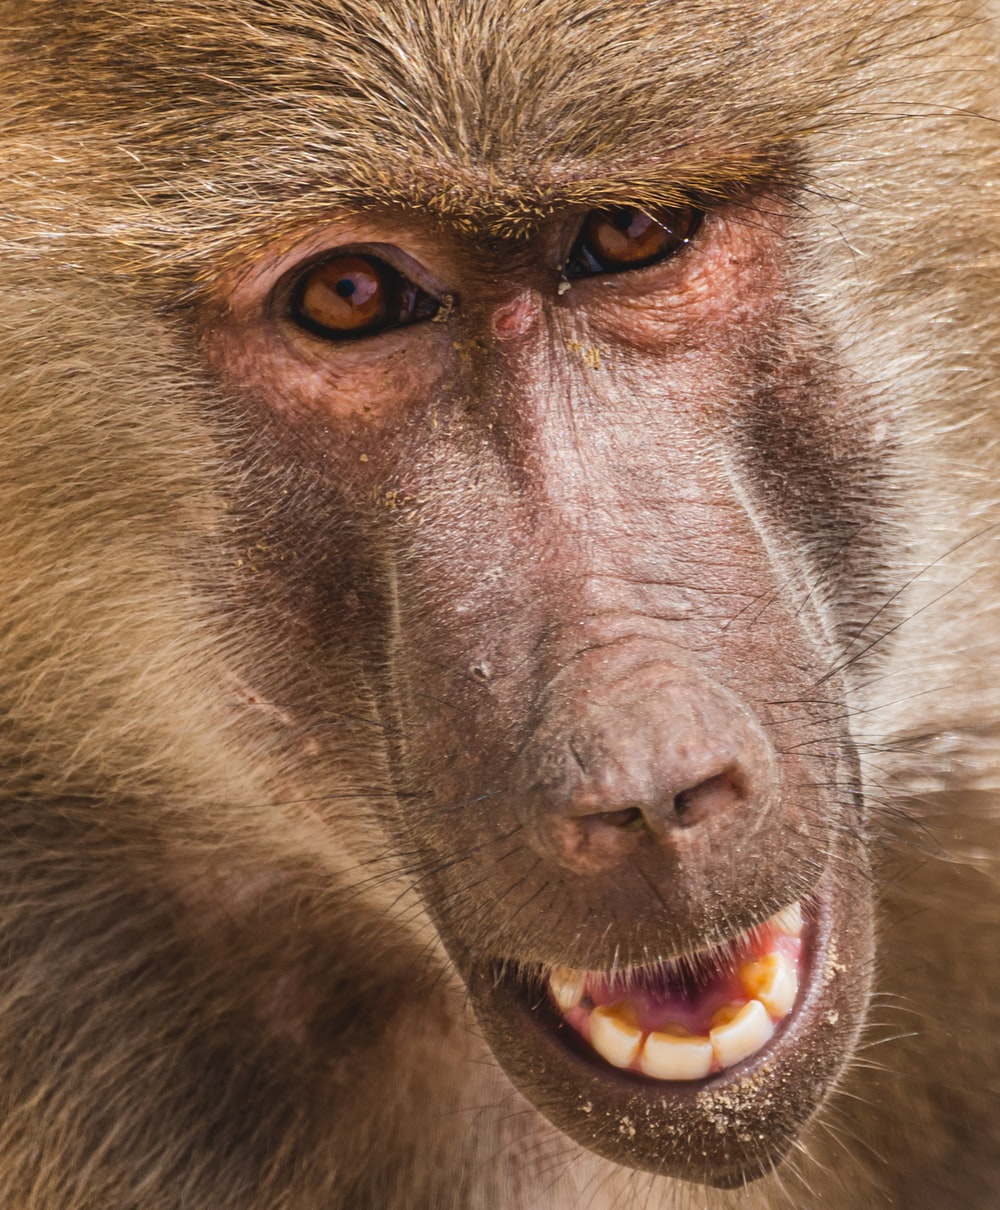 brown monkey face in close-up photo